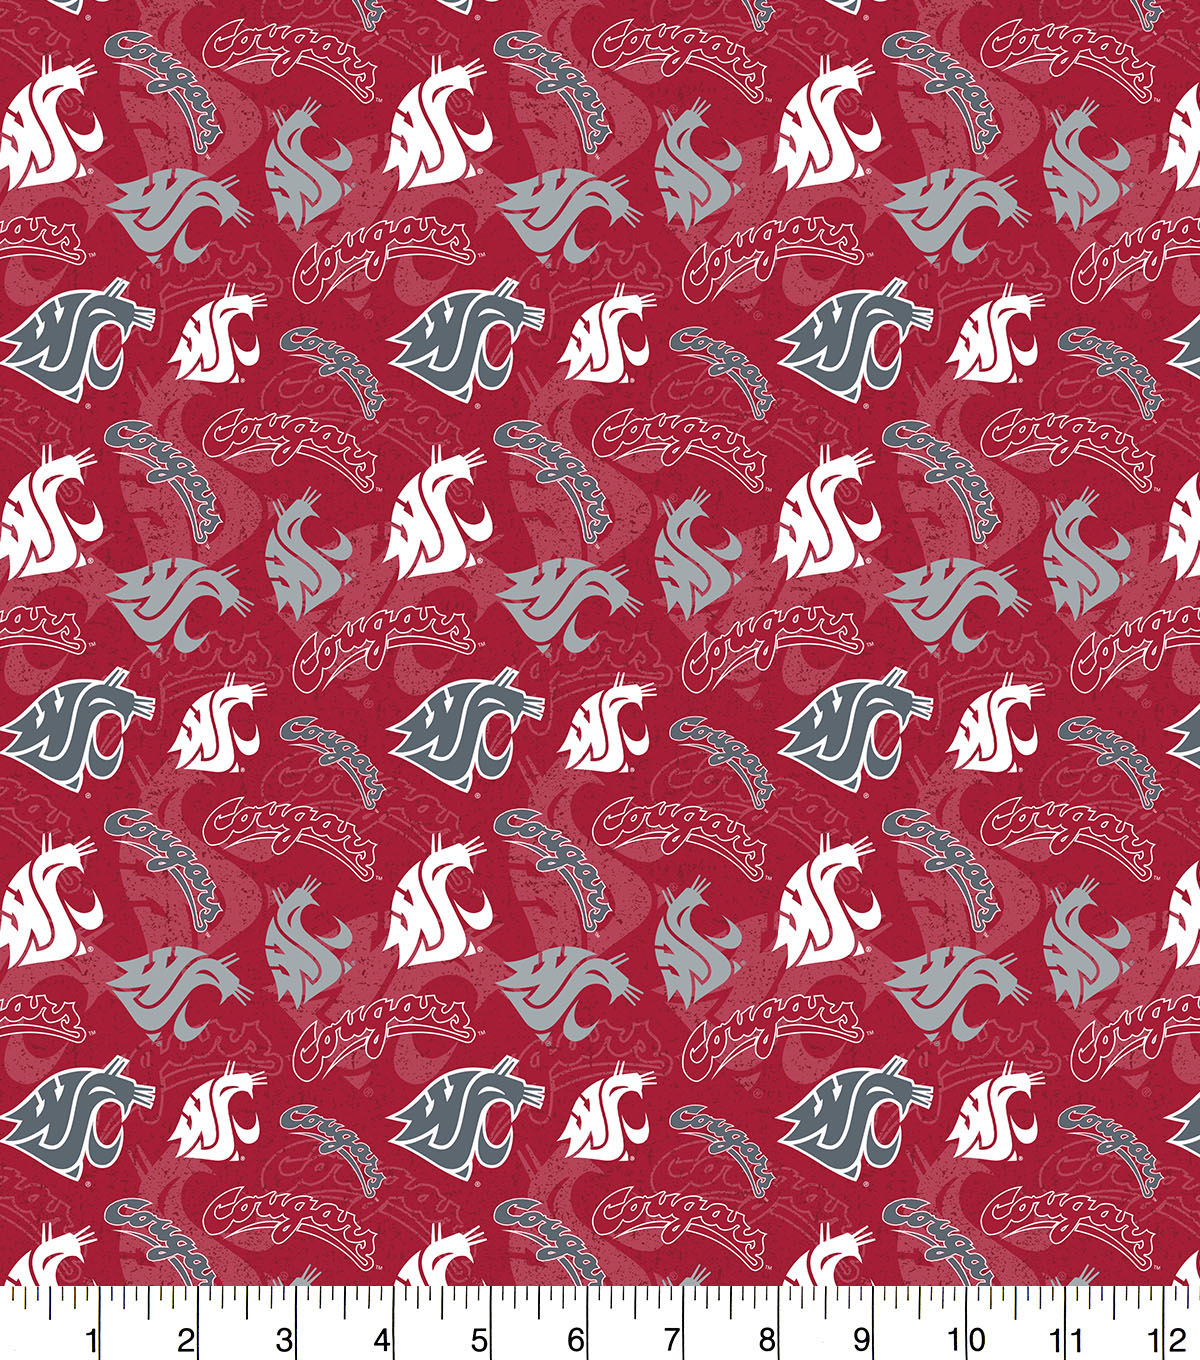 Washington State University Cougars Cotton Fabric-Tone on Tone